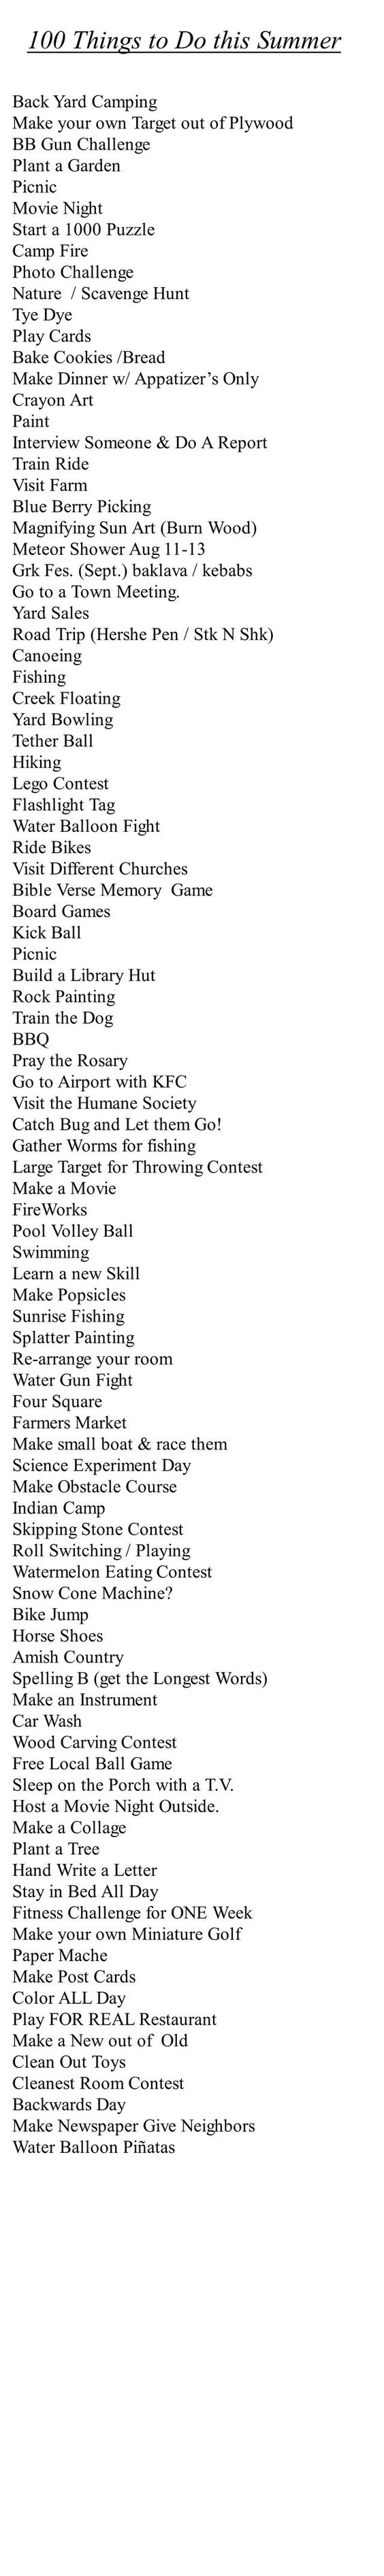 """100 Things to do before I """"Bucket List"""" Most of these are"""